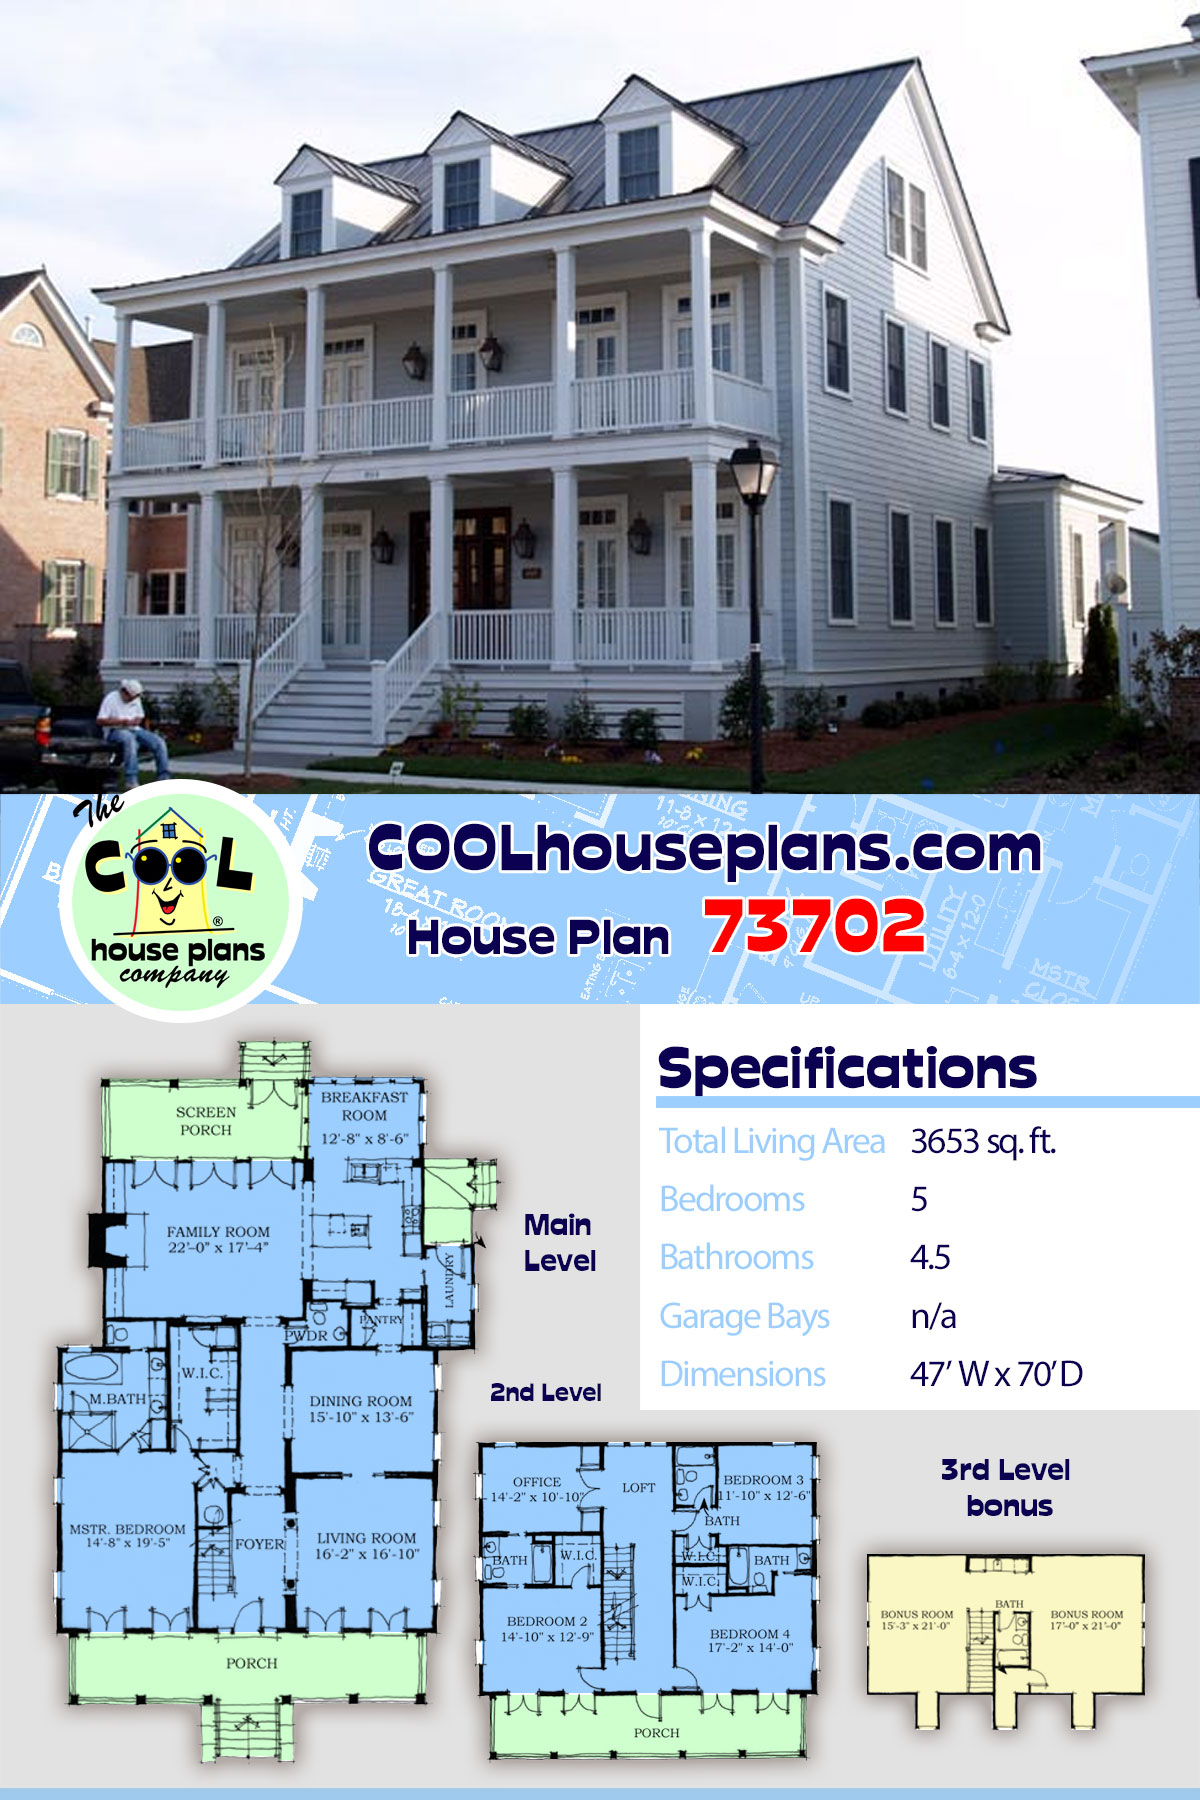 Historic, Narrow Lot House Plan 73702 with 5 Beds, 5 Baths